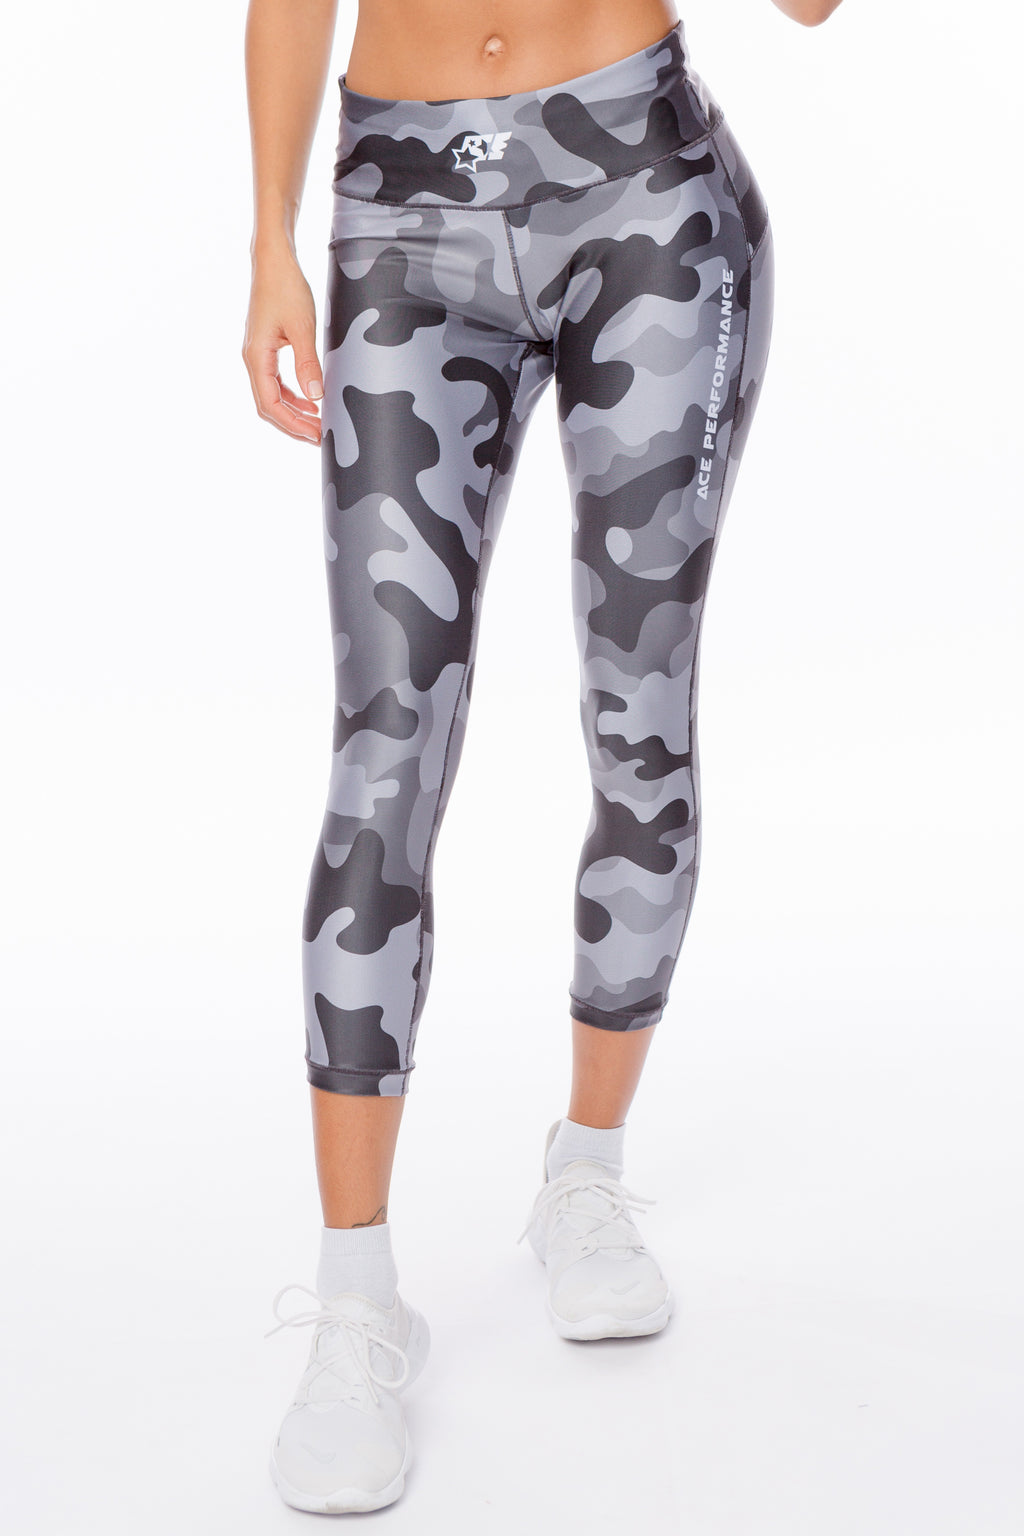 WOMENS LEGGINGS - BLACK CAMO - ACEPERFORMANCE